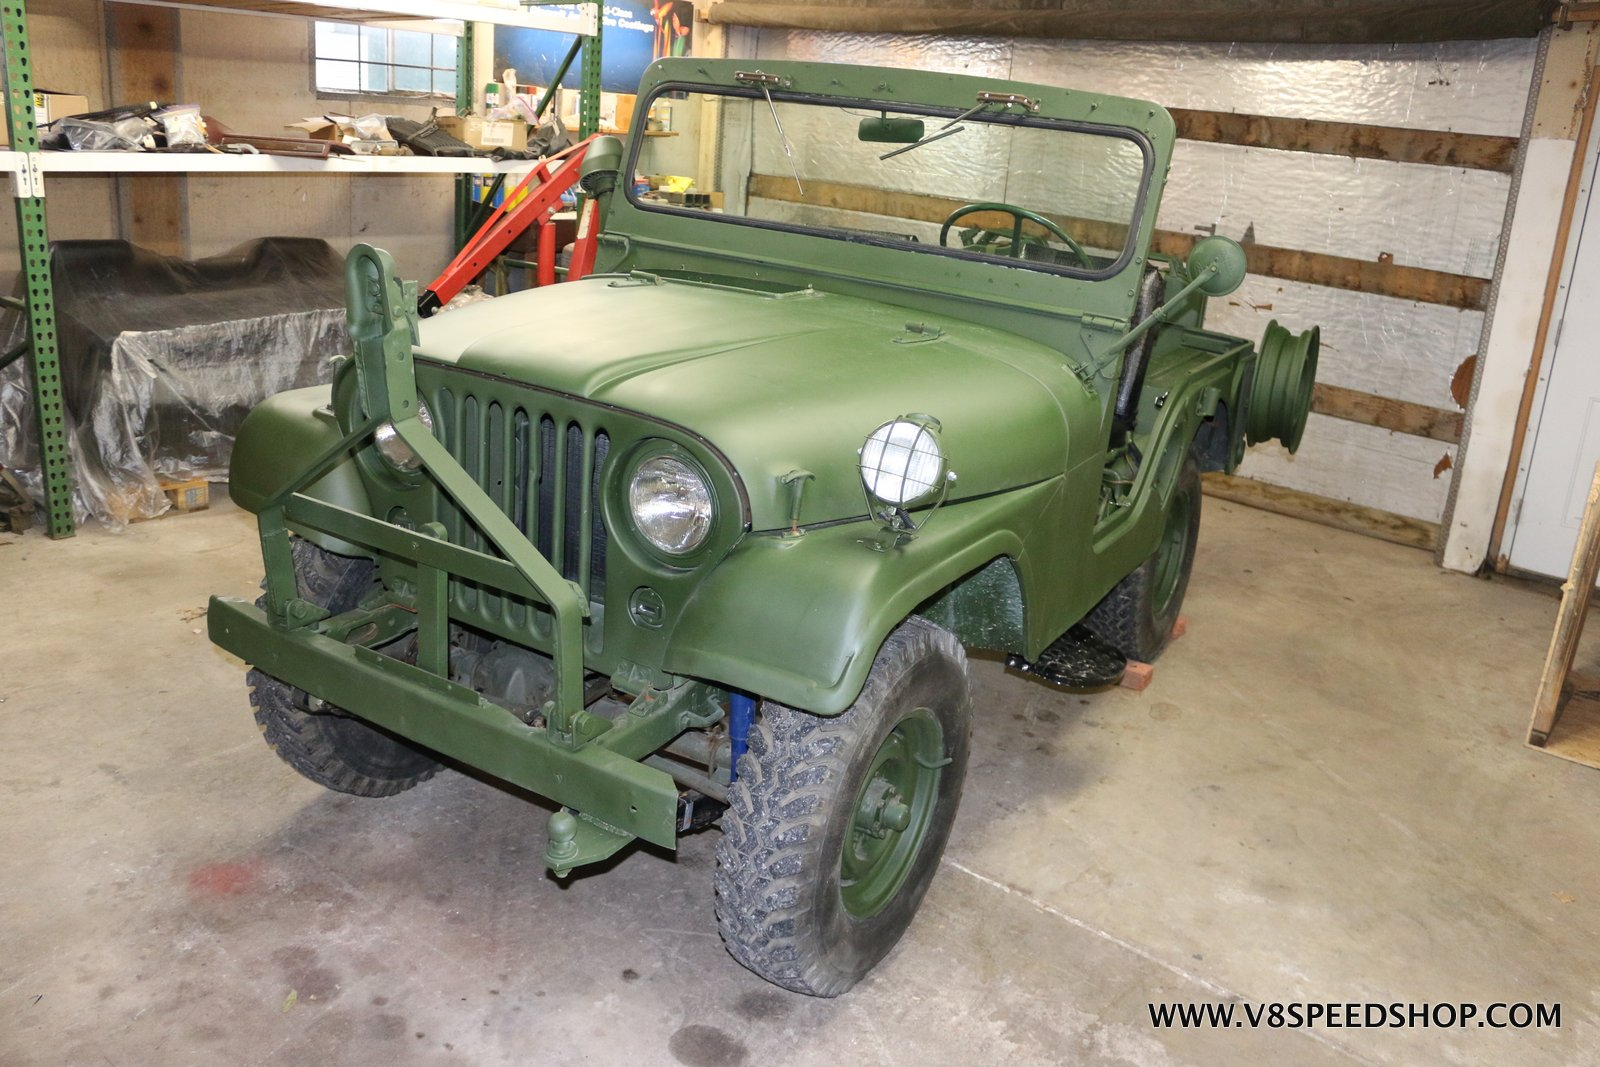 1952 Willys Jeep M38A1 Maintenance at the V8 Speed and Resto Shop